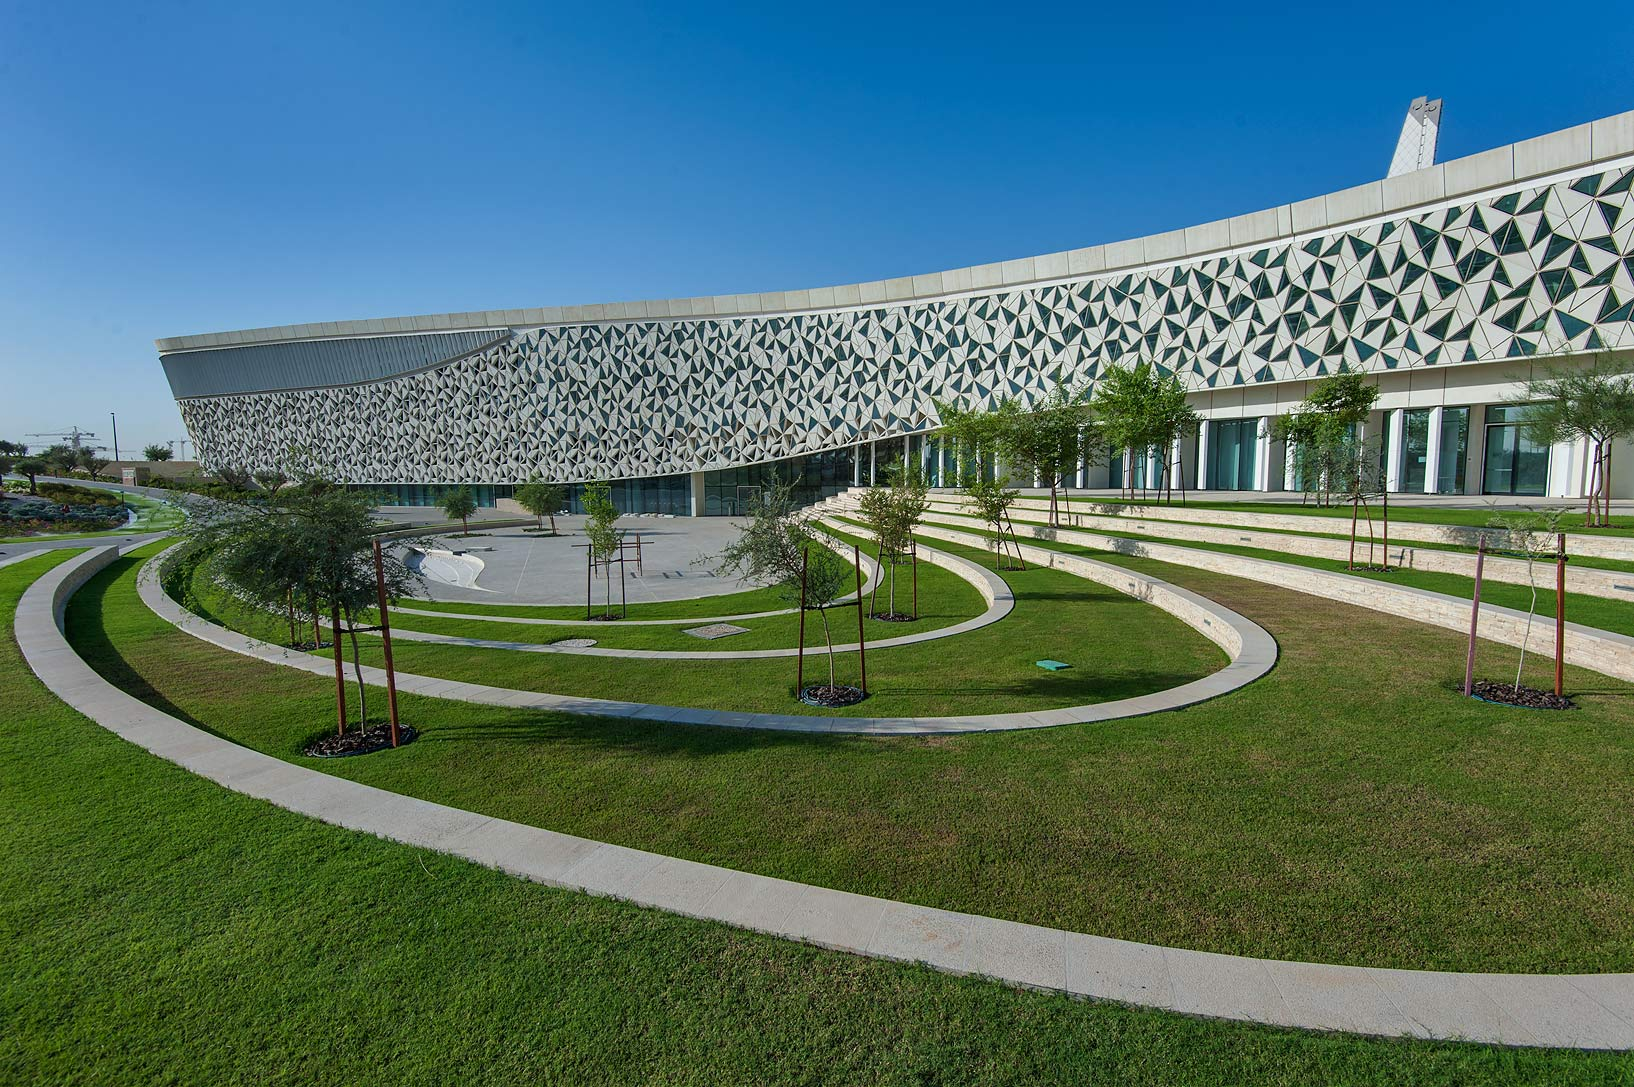 Grassy courtyard of Education City Mosque. Doha, Qatar